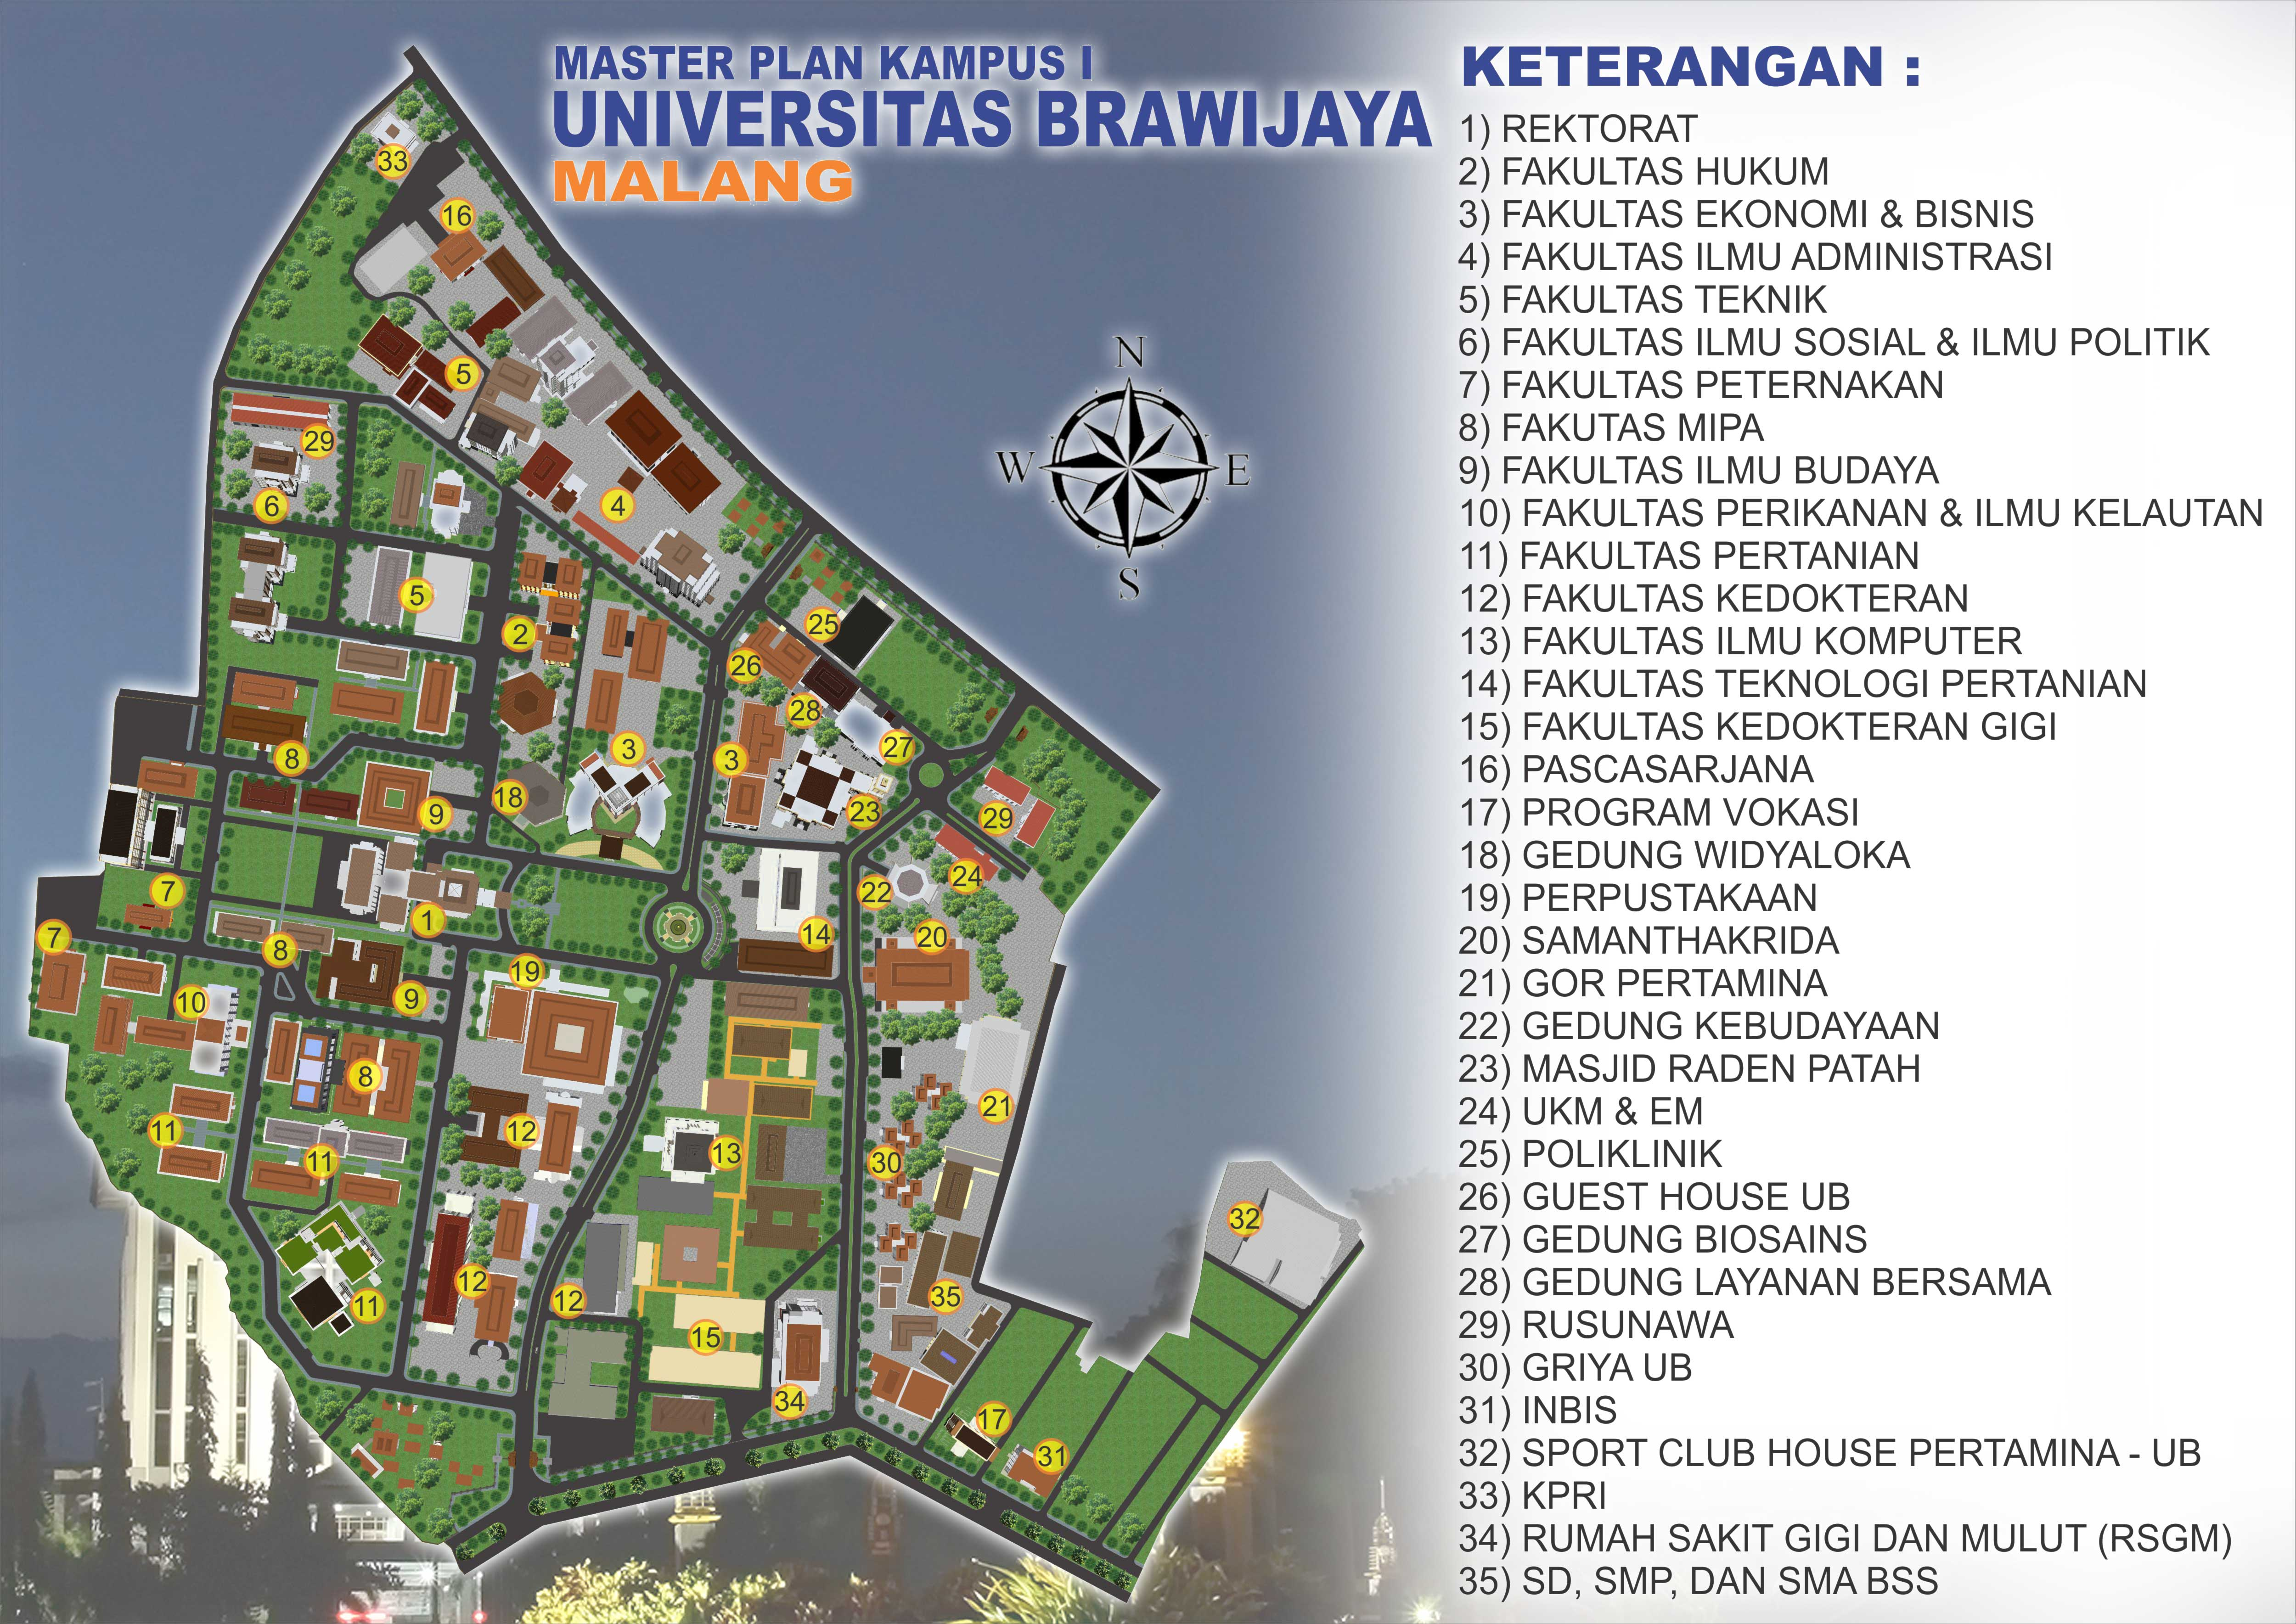 Campus Map Universitas Brawijaya